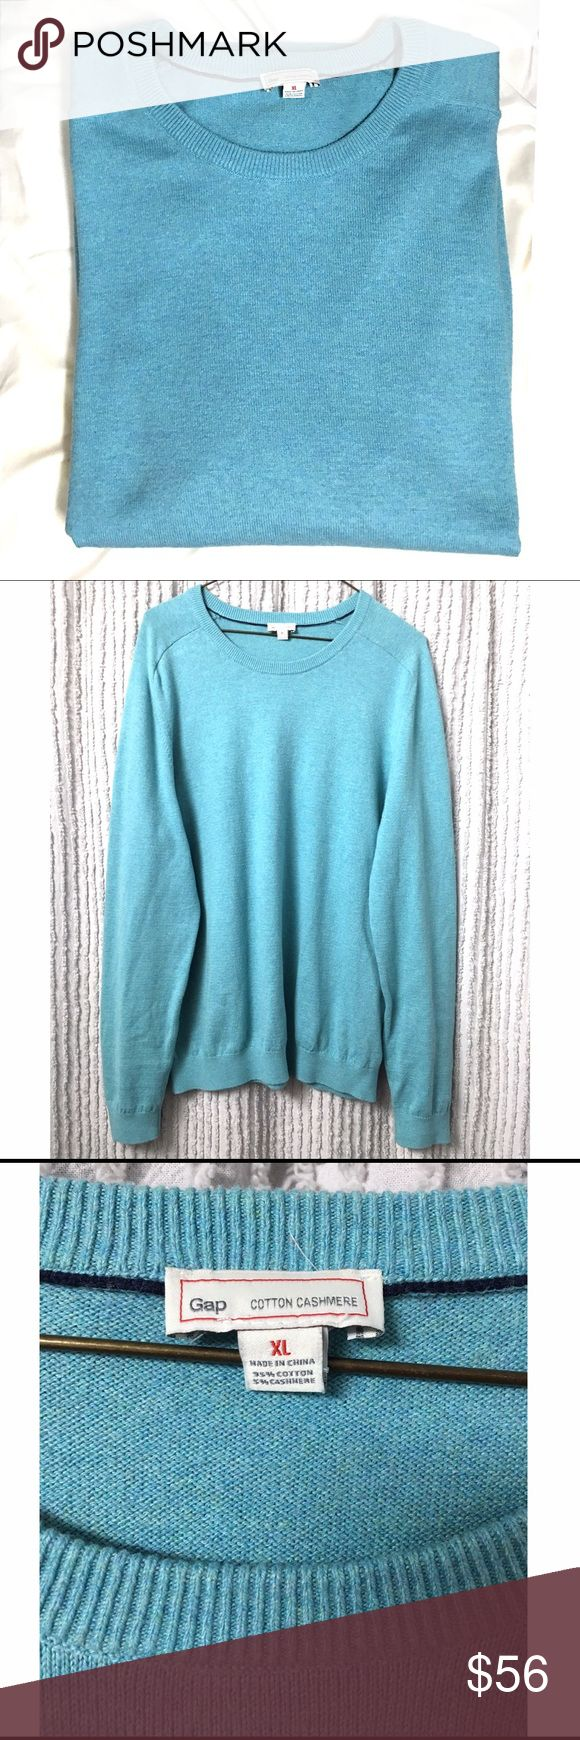 GAP men's cotton cashmere crew neck sweater Color is a pastel / turquoise blue. Cashmere and cotton blend. Size XL. Worn once, excellent condition. Perfect for the cold weather. GAP Sweaters Crewneck